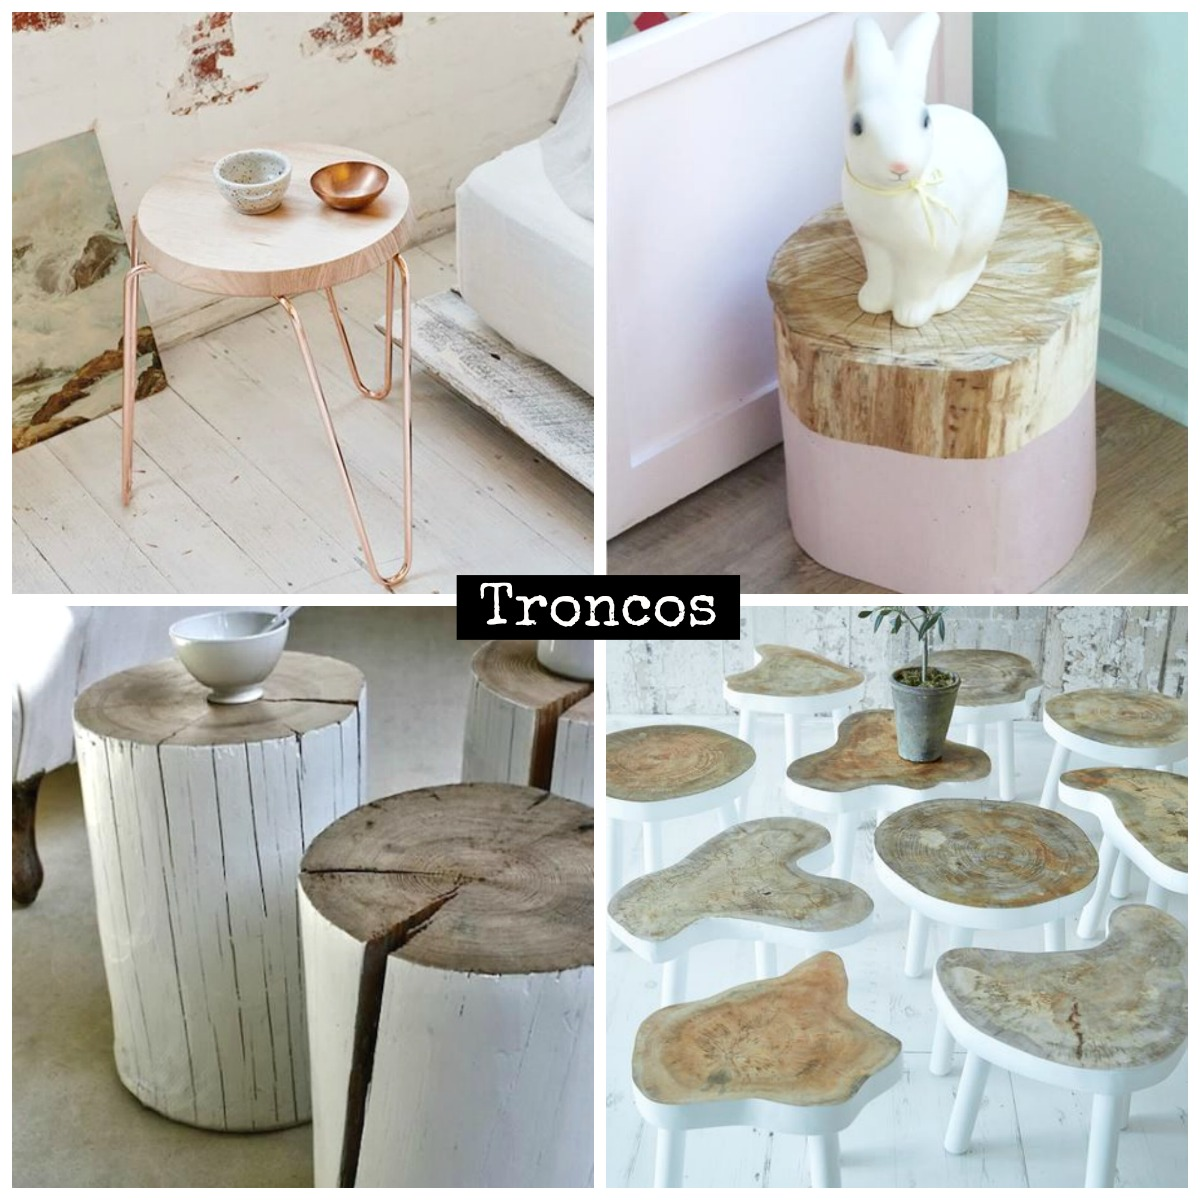 Ideas uso de troncos en decoraci n la taza de loza for Tronco de arbol para decoracion